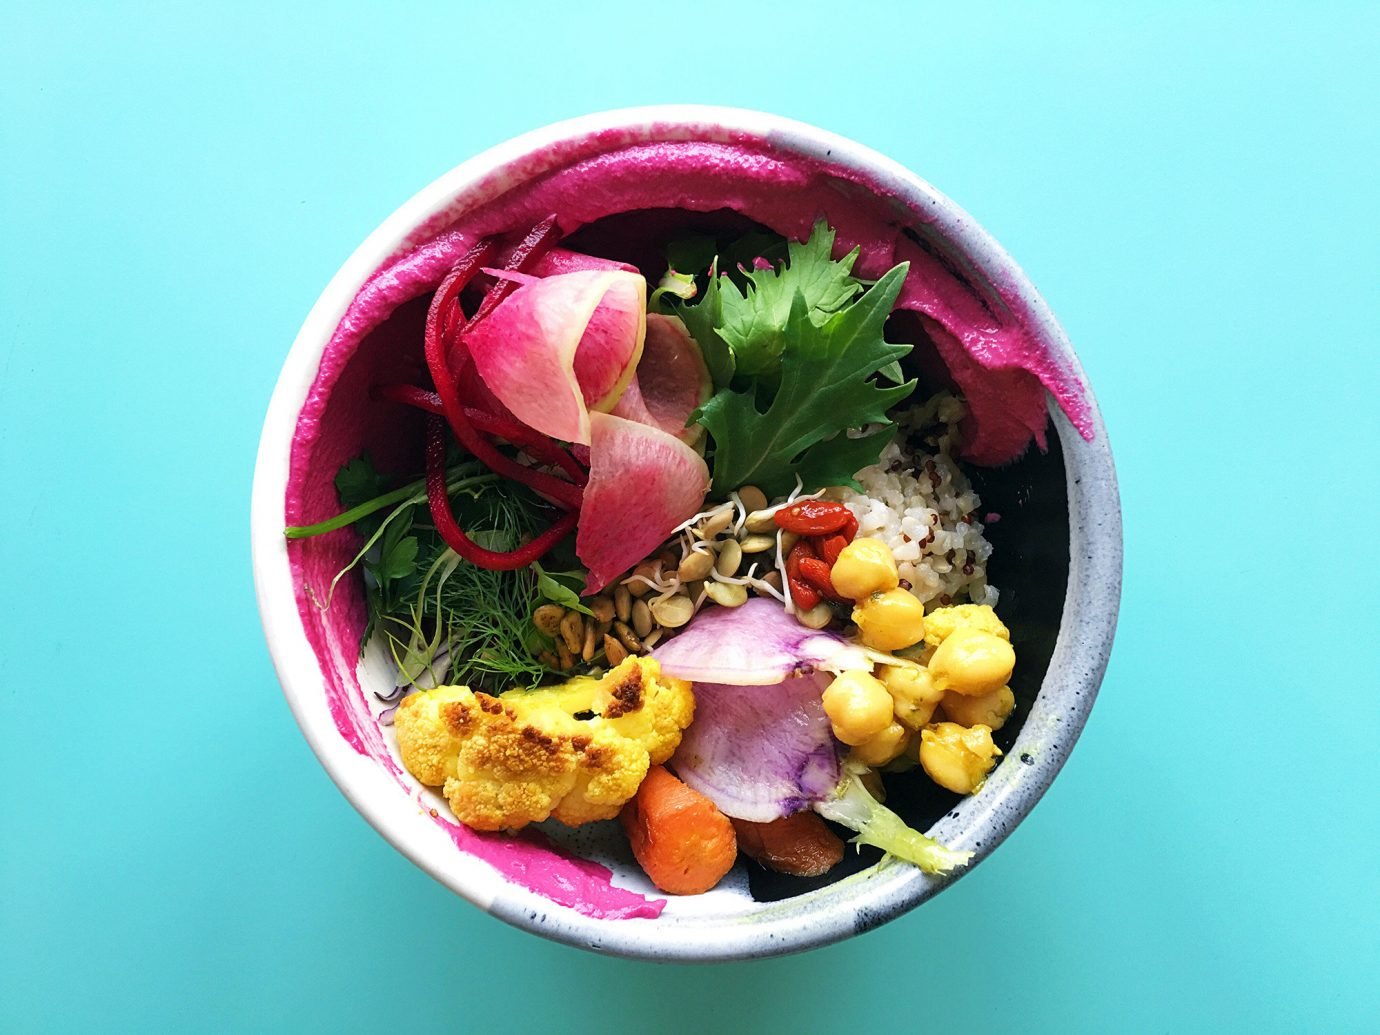 Food + Drink food plate fruit dish bowl meal produce vegetable lunch cuisine containing fresh